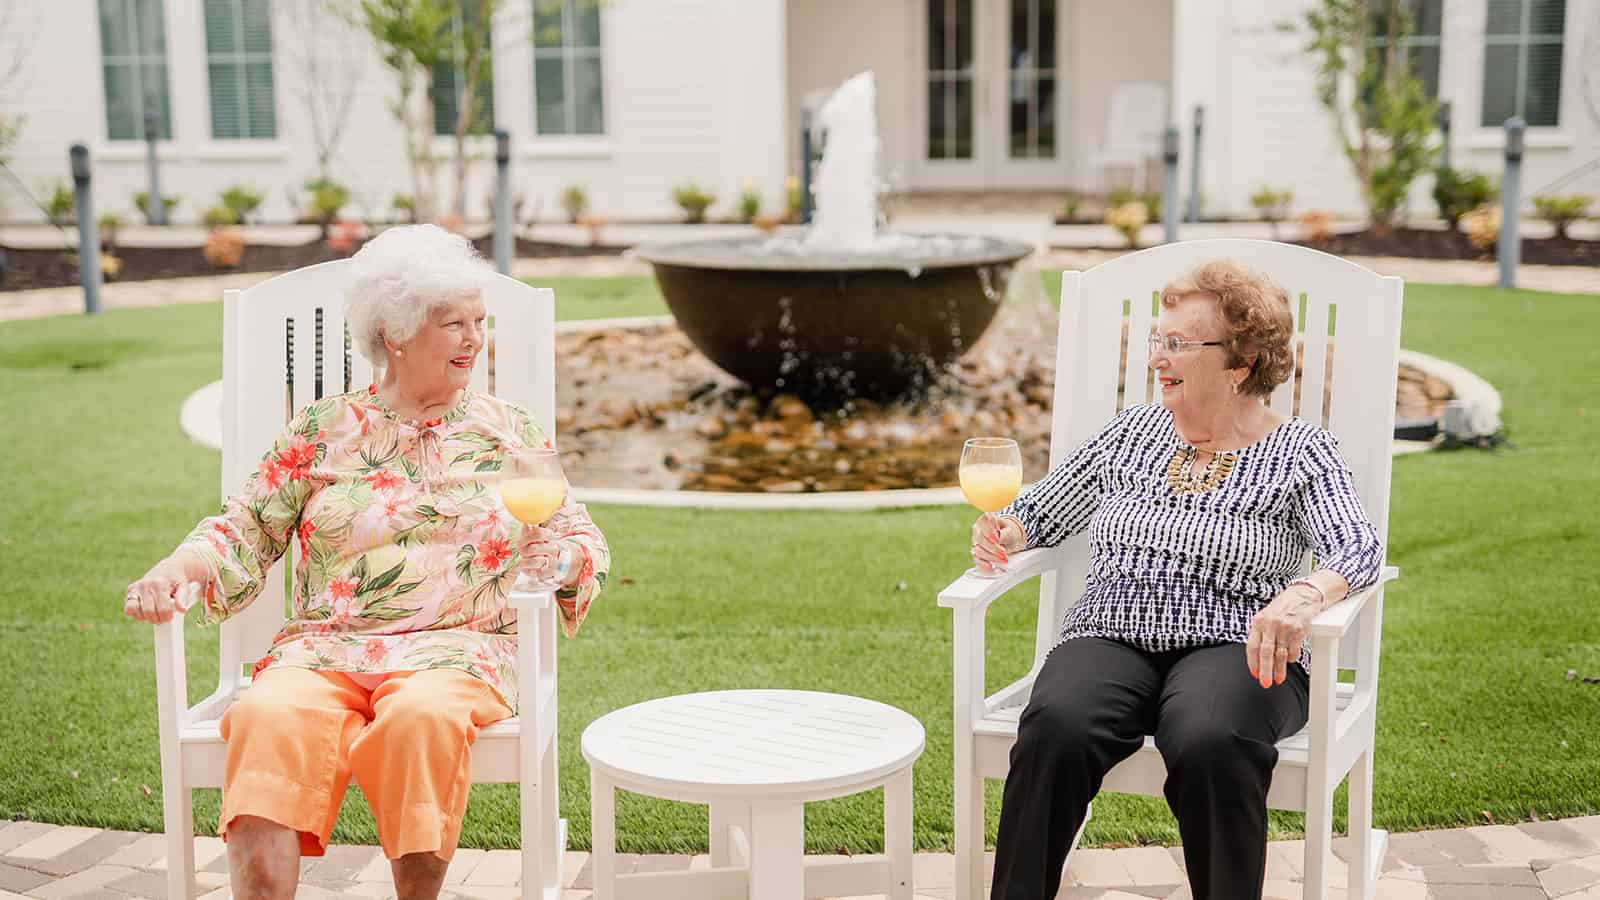 Two senior women seated in courtyard with drinks